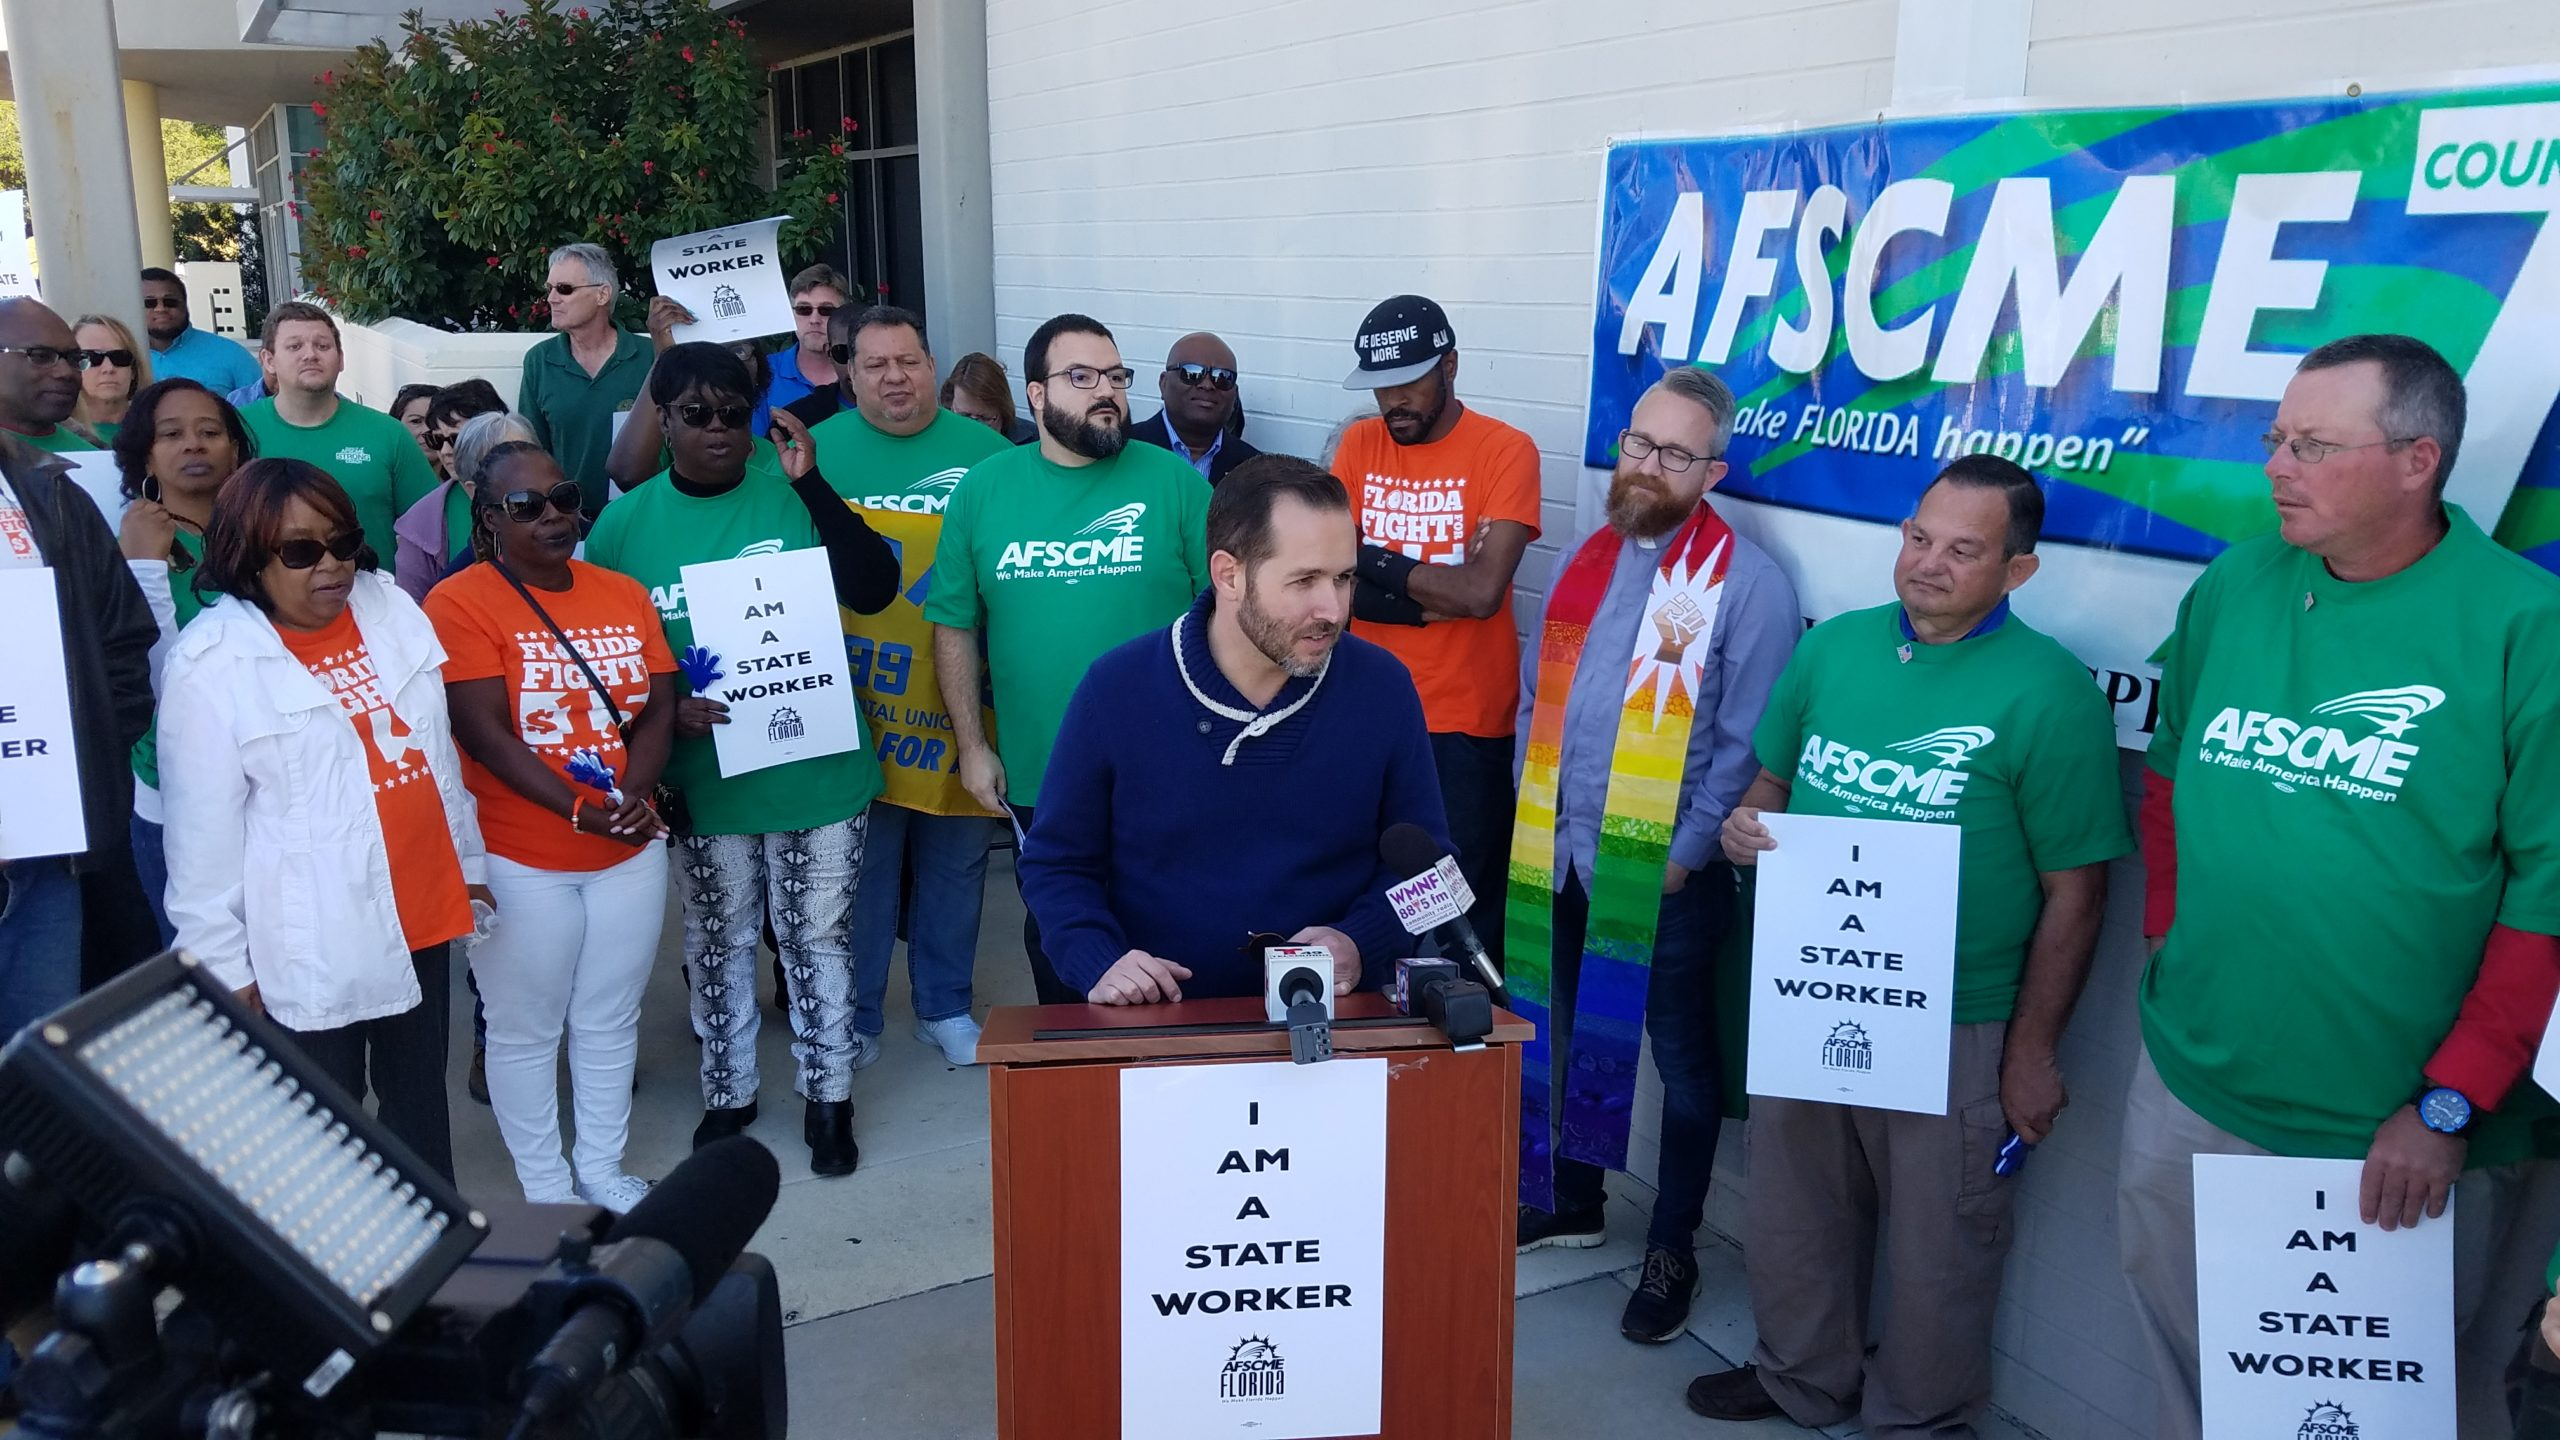 Florida state workers rally with labor unions in Tampa